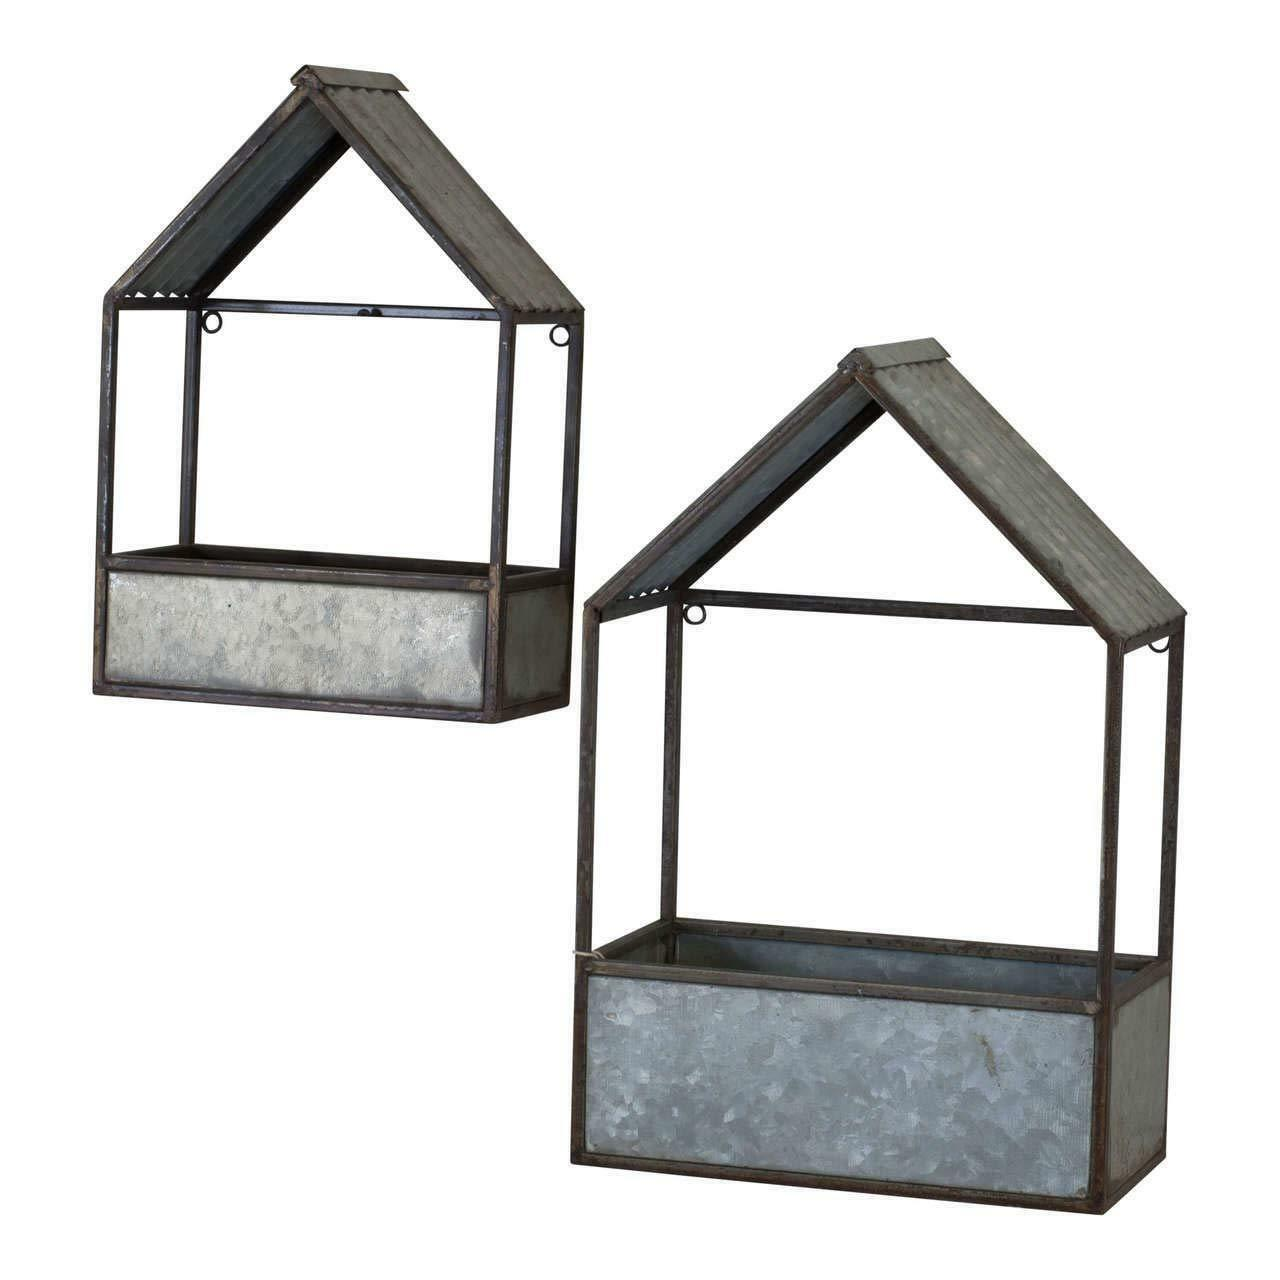 Set of 2 House Shaped Metal Planters Assorted Sizes Wall Mounted or Sitting